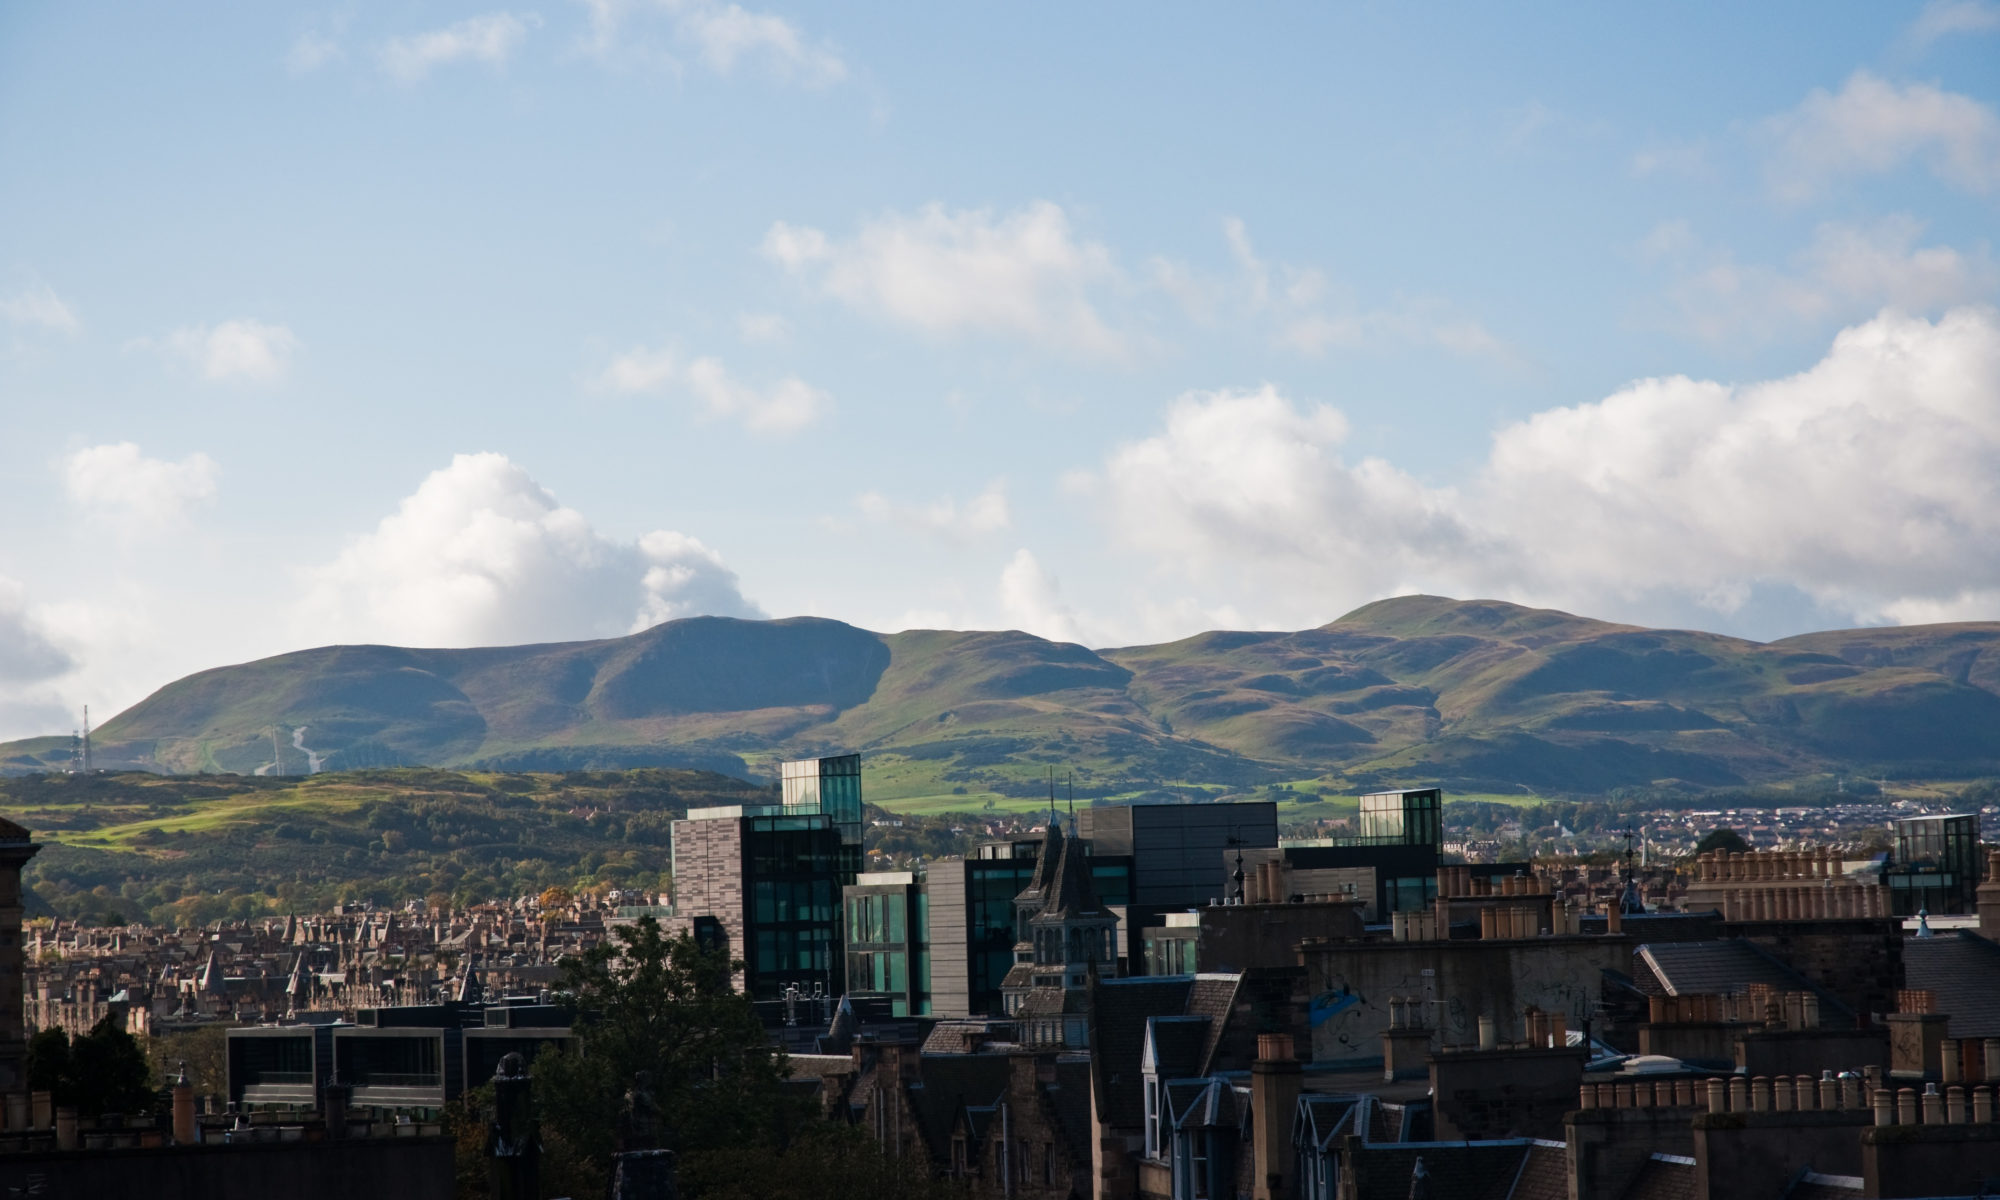 Edinburgh cityscape with the Pentland Hills in the background